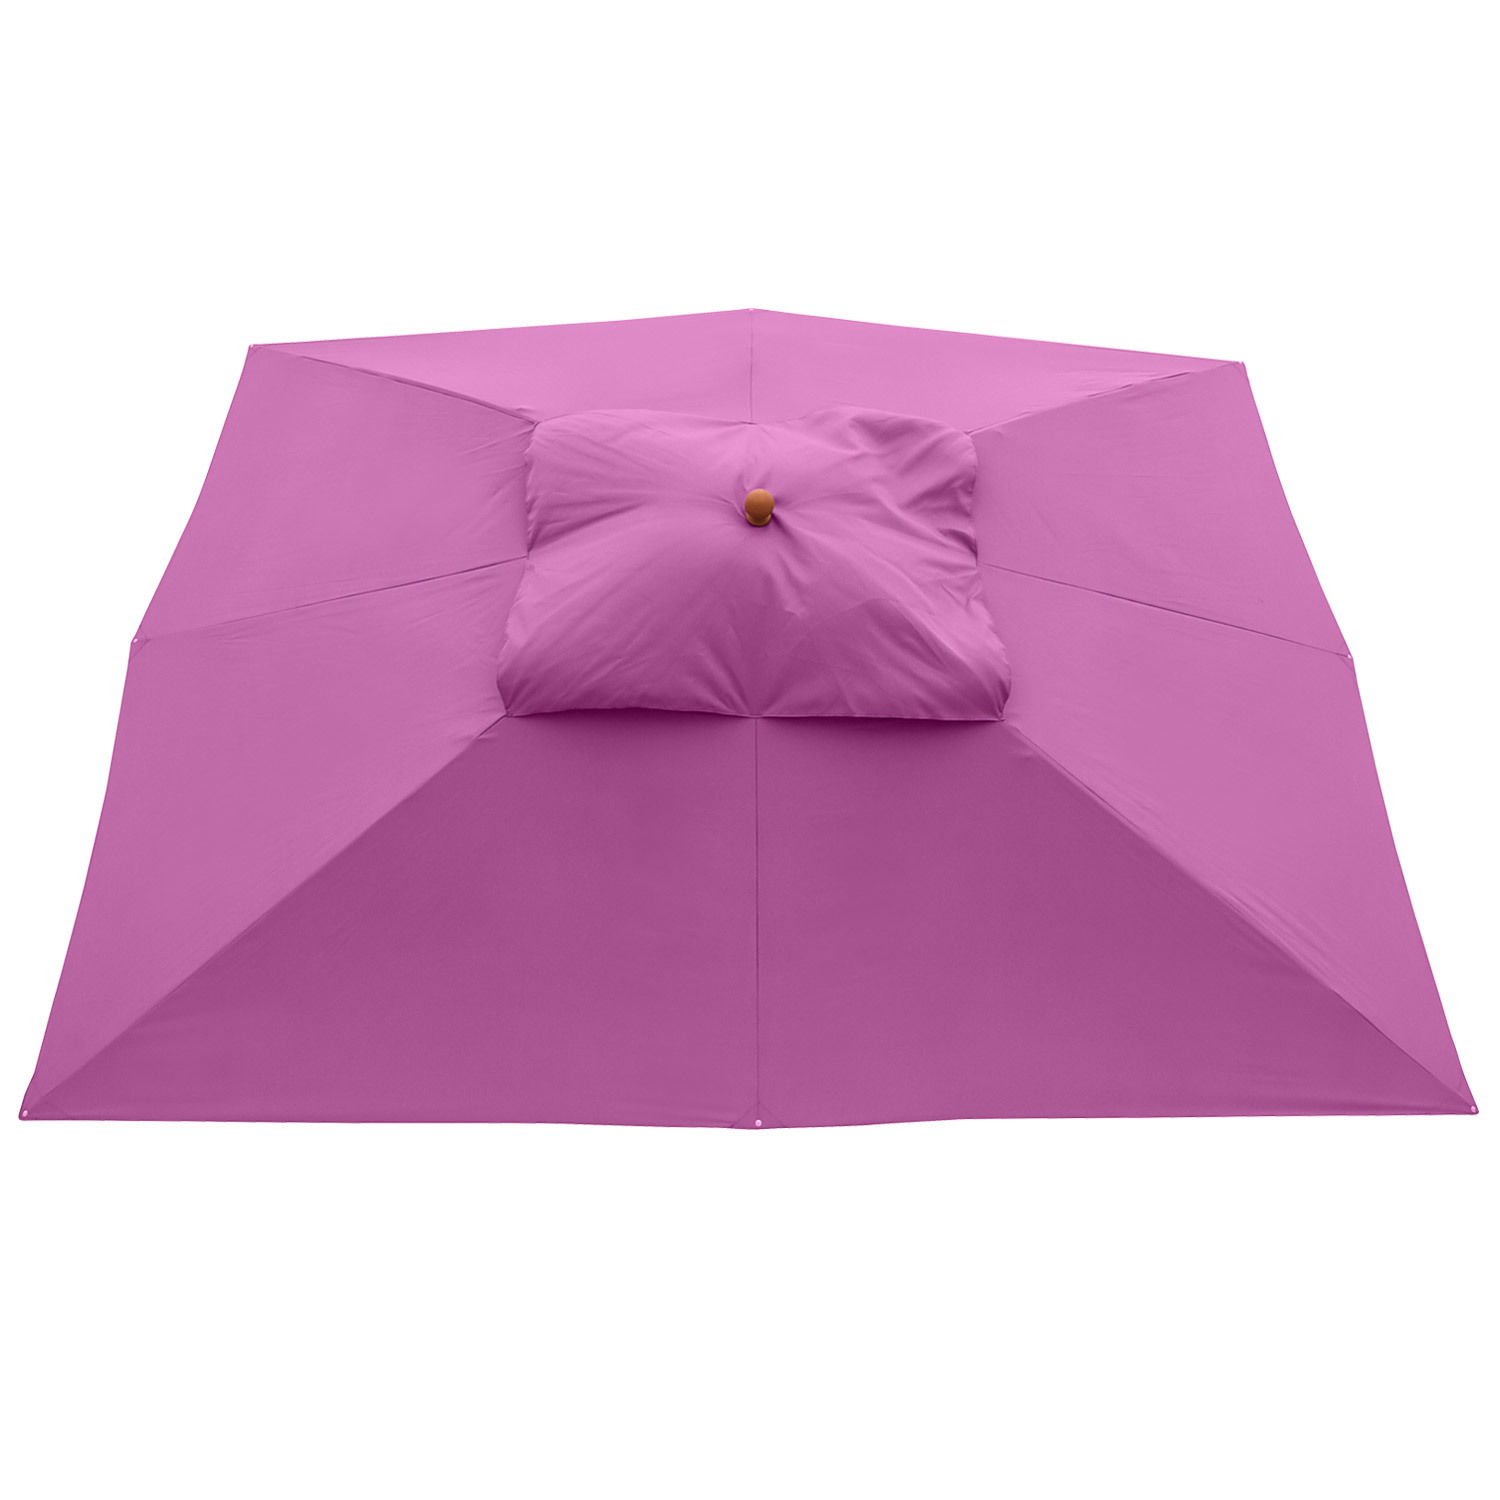 anndora sonnenschirm eckig pink 3m x 4m uv schutz gartenschirm lounge parasol 4260384735752 ebay. Black Bedroom Furniture Sets. Home Design Ideas